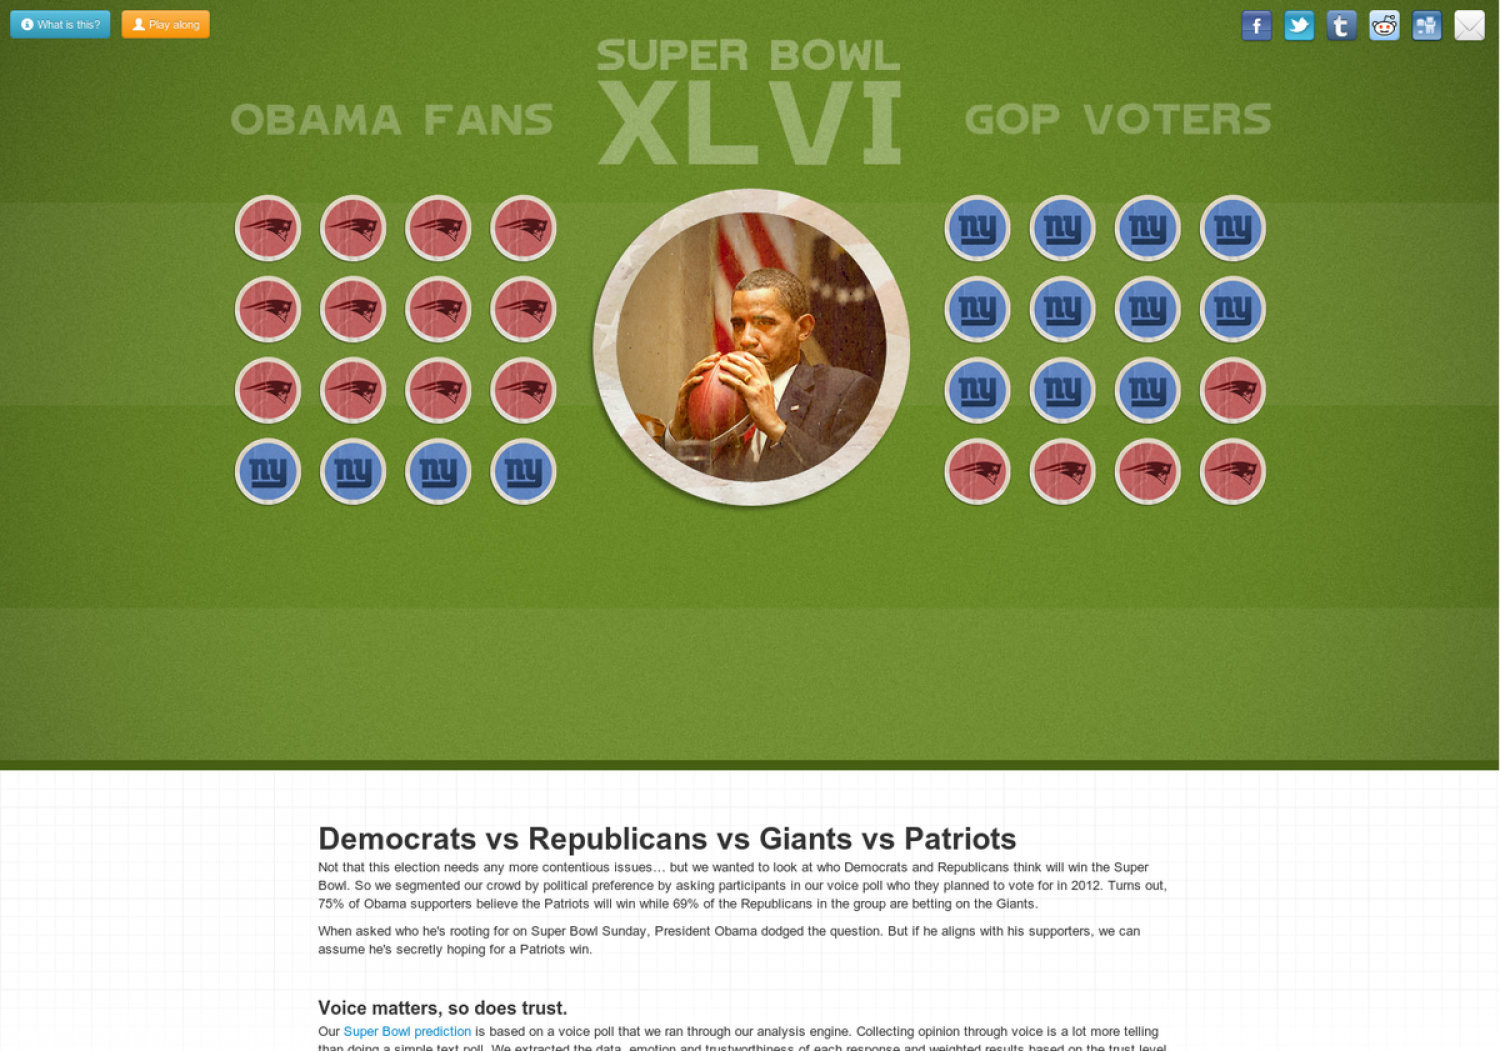 Obama fans side with the Patriots in the Super Bowl Infographic